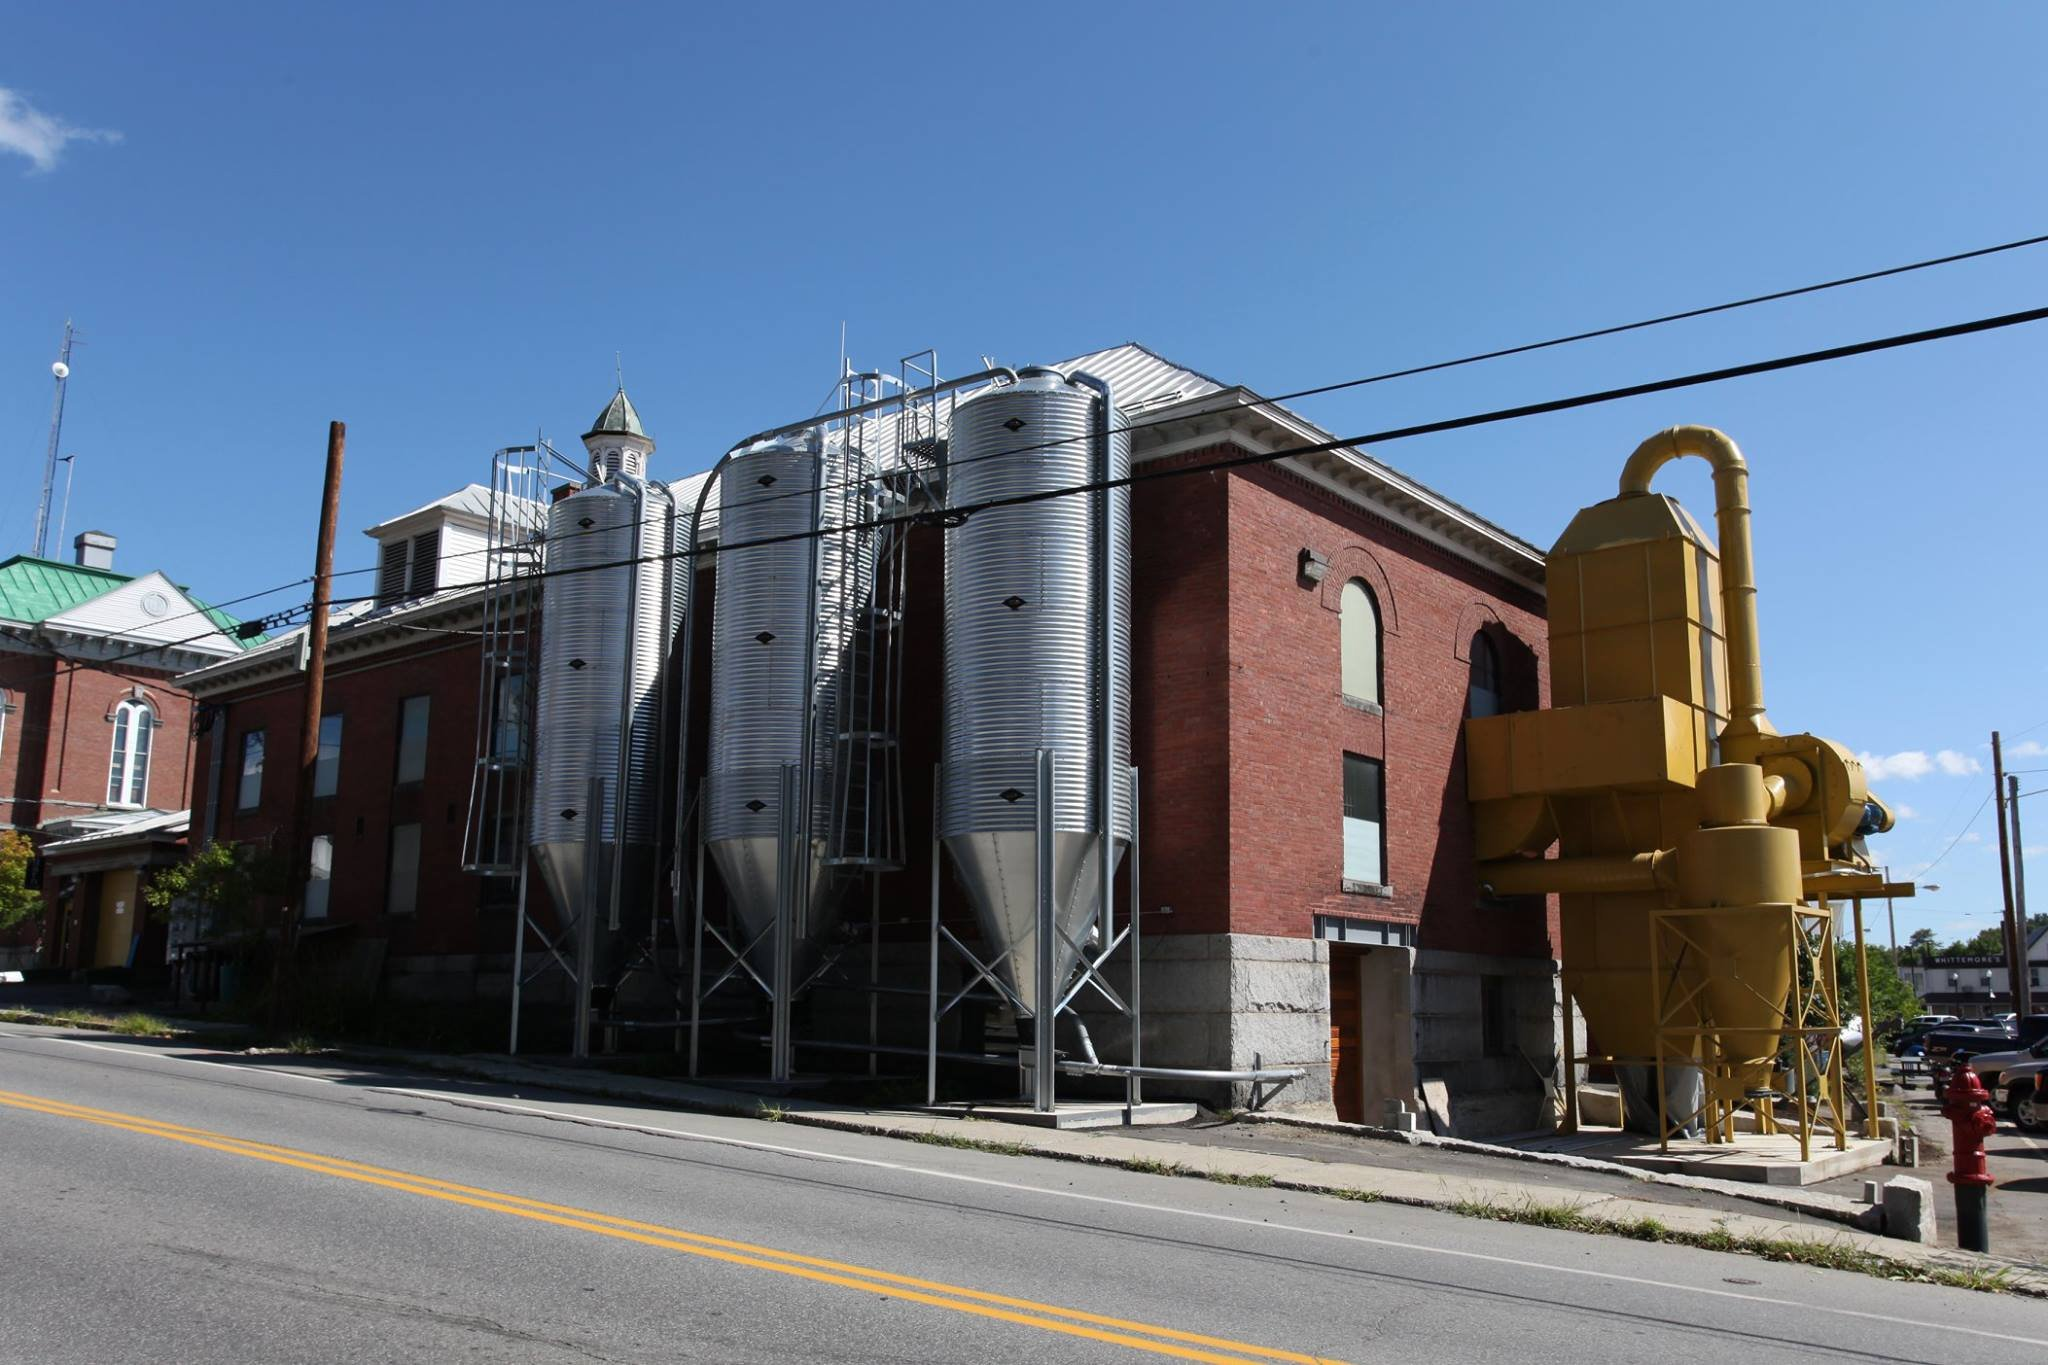 The historic Skowhegan County Jail was repurposed as a gristmill and is now the home to Maine Grains